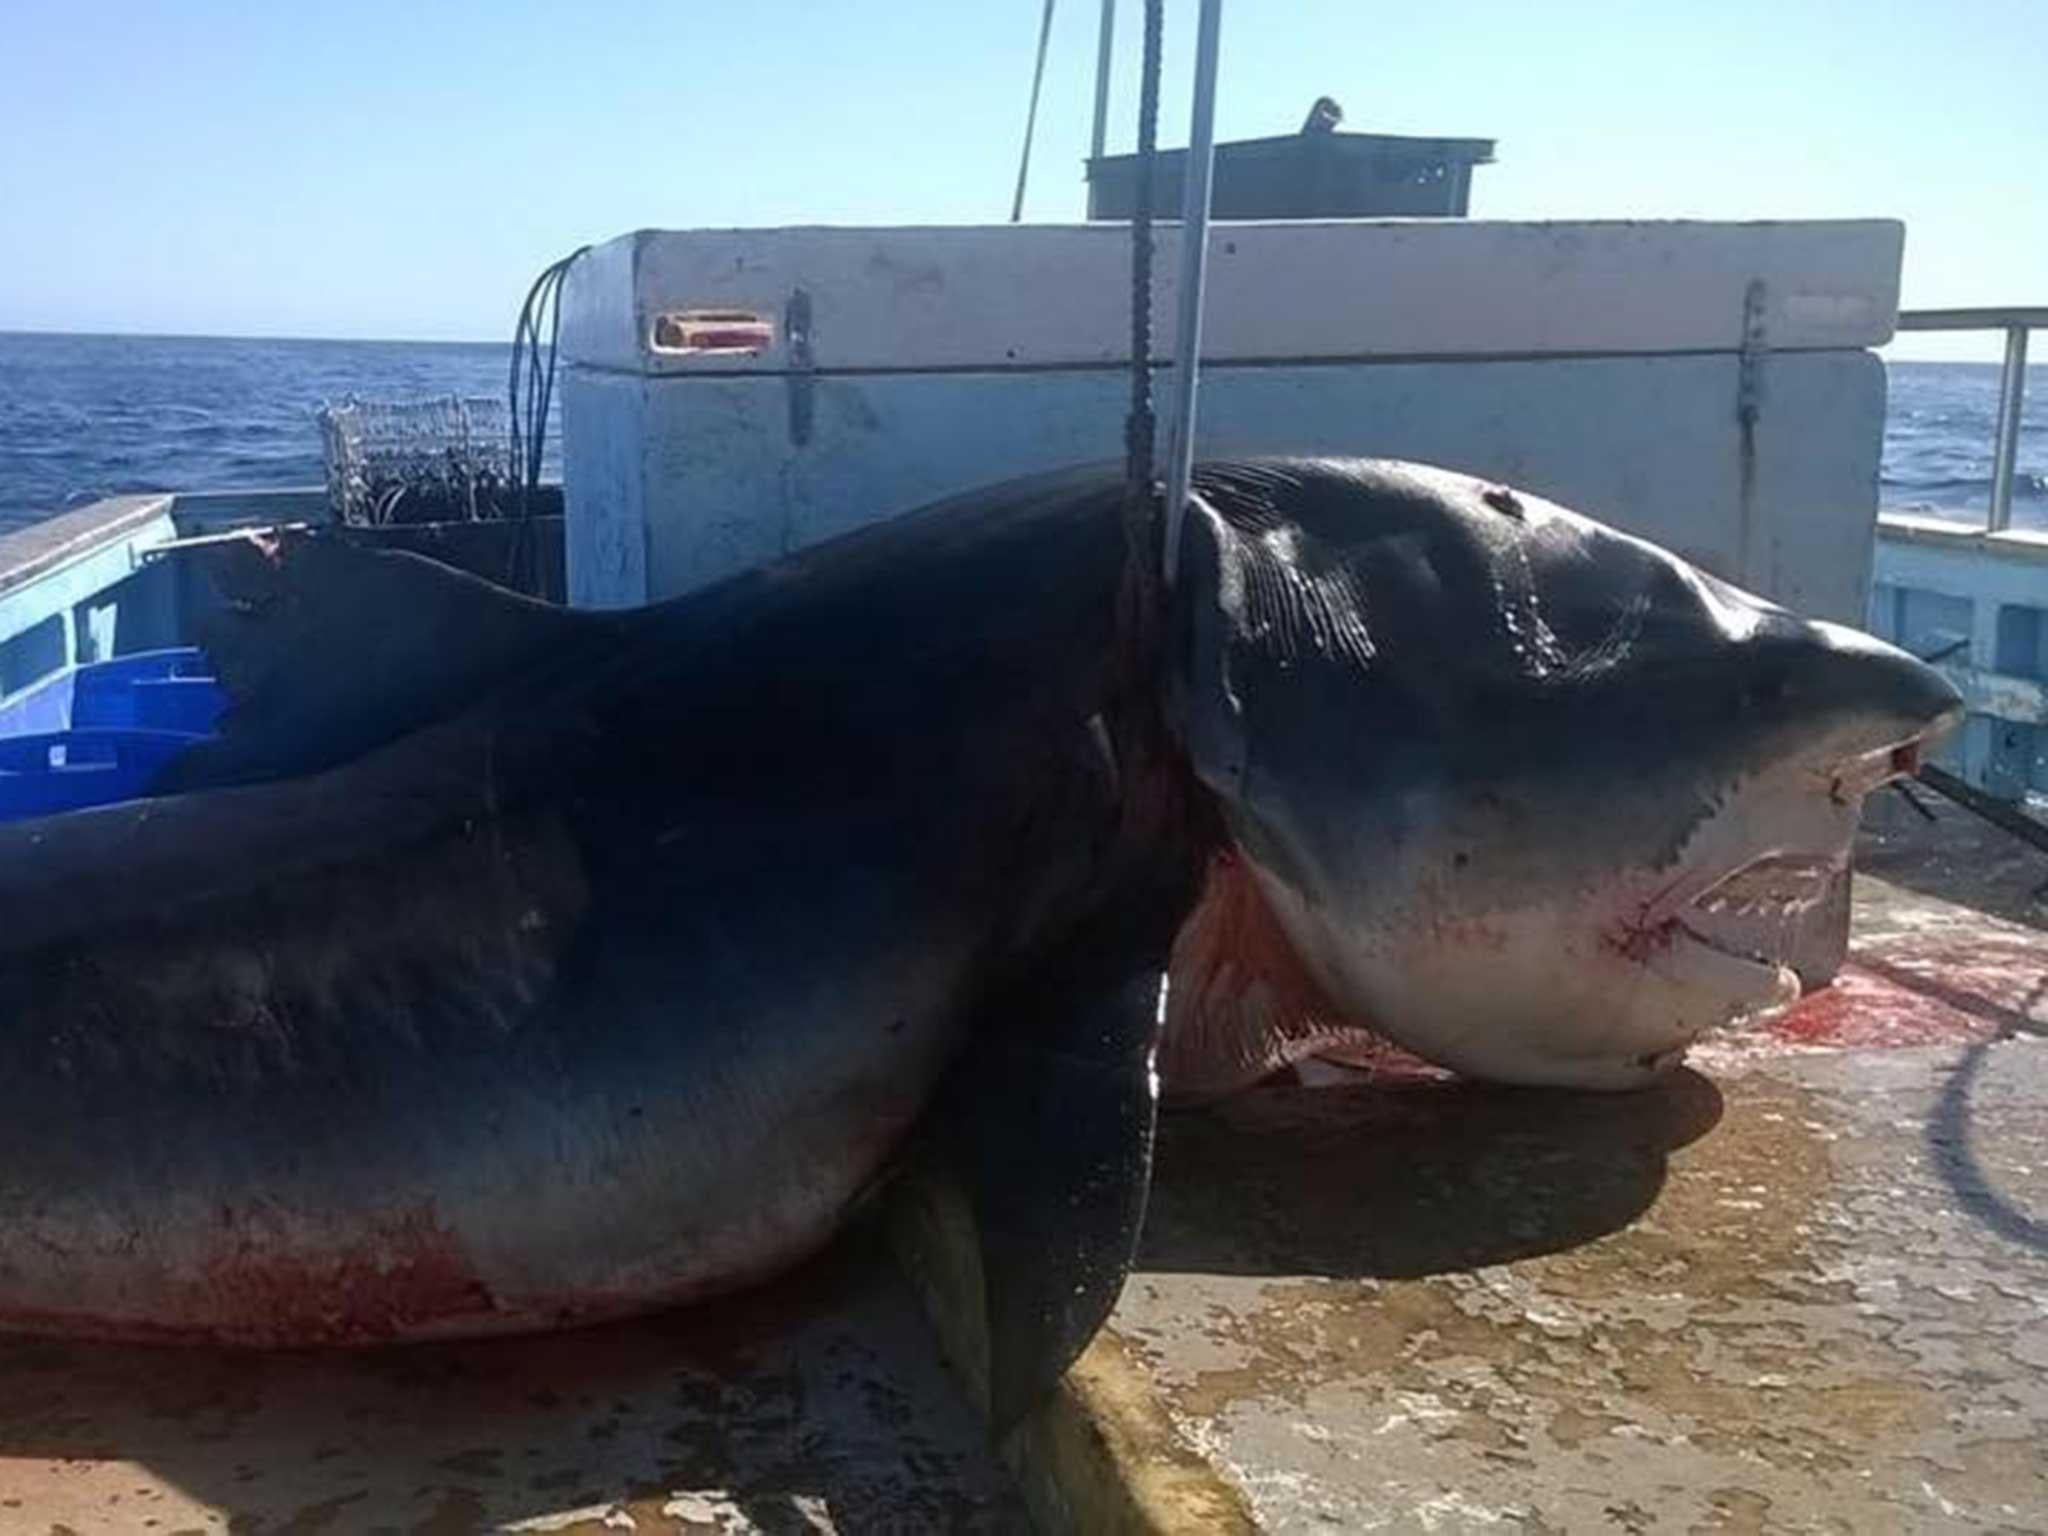 Dead shark picture: Questions remain over Facebook images of enormous shark caught off Australian coast